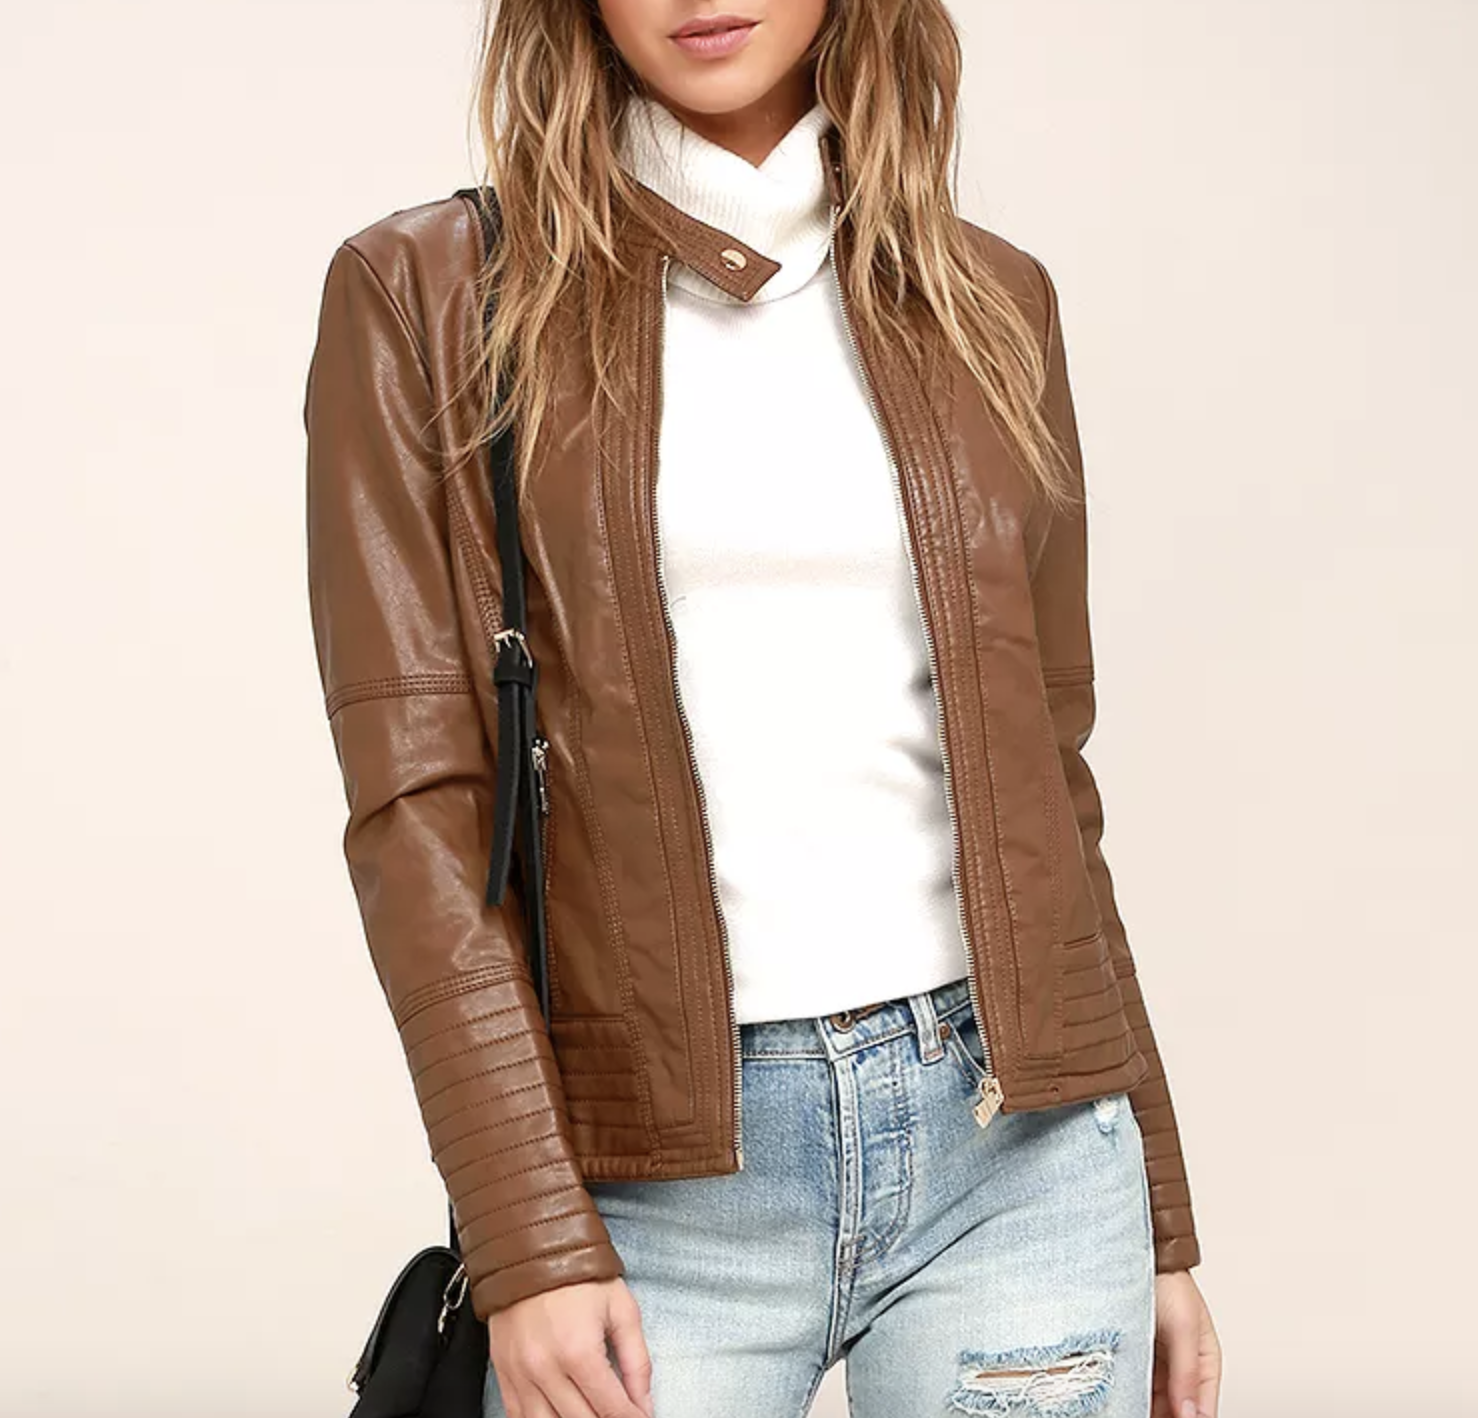 Vegan Leather Jacket from Lulu's | smelltheroses.com